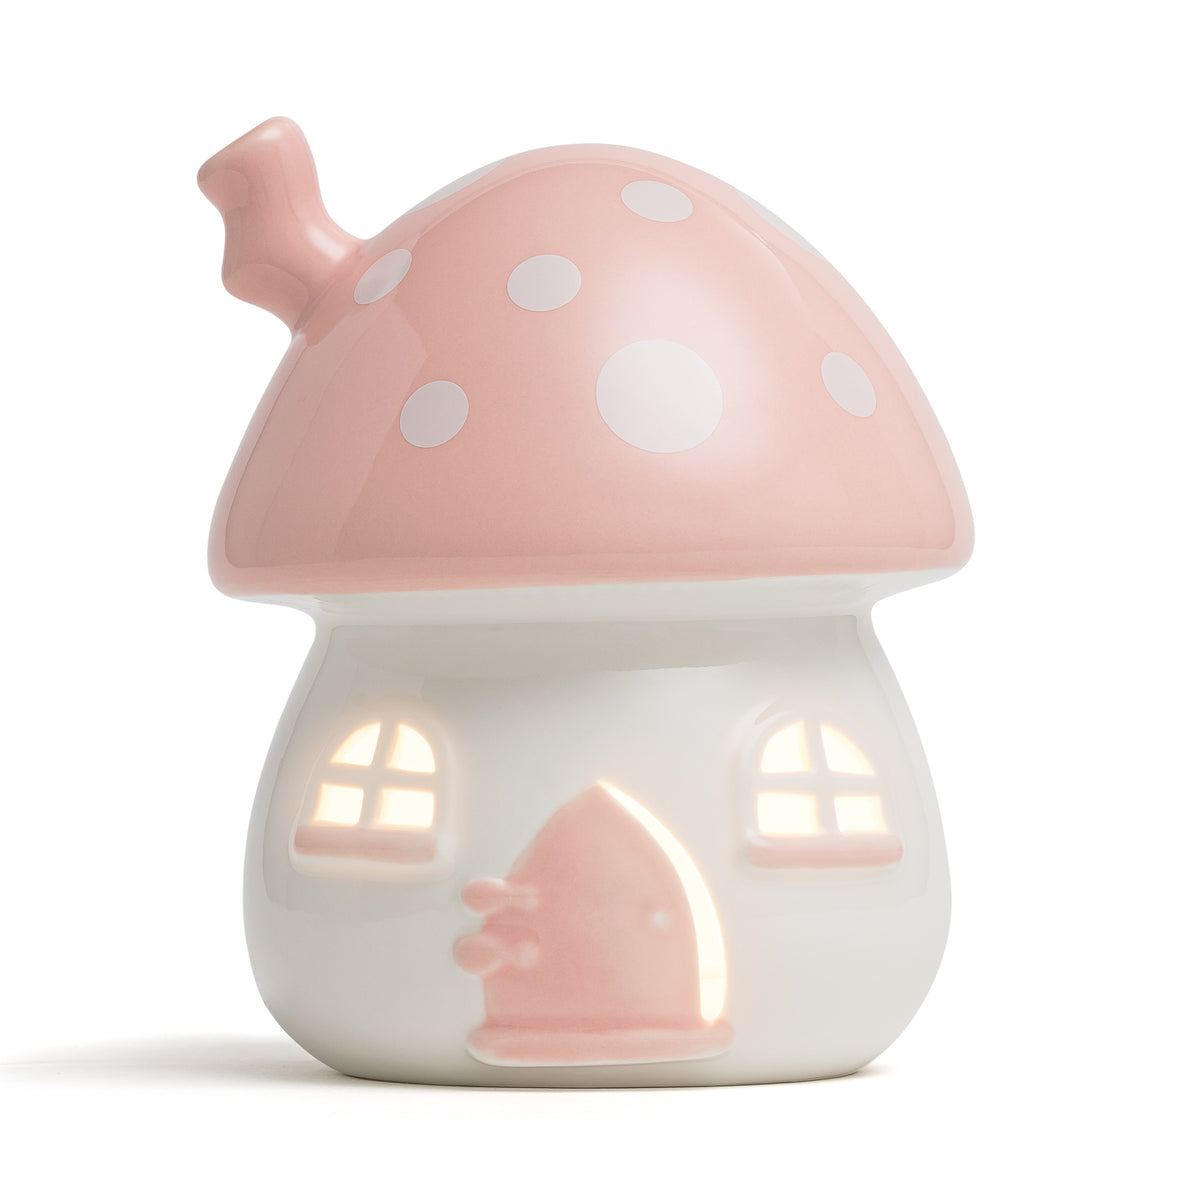 Little Belle Fairy House Nightlight - Pink & White [Plug-in]